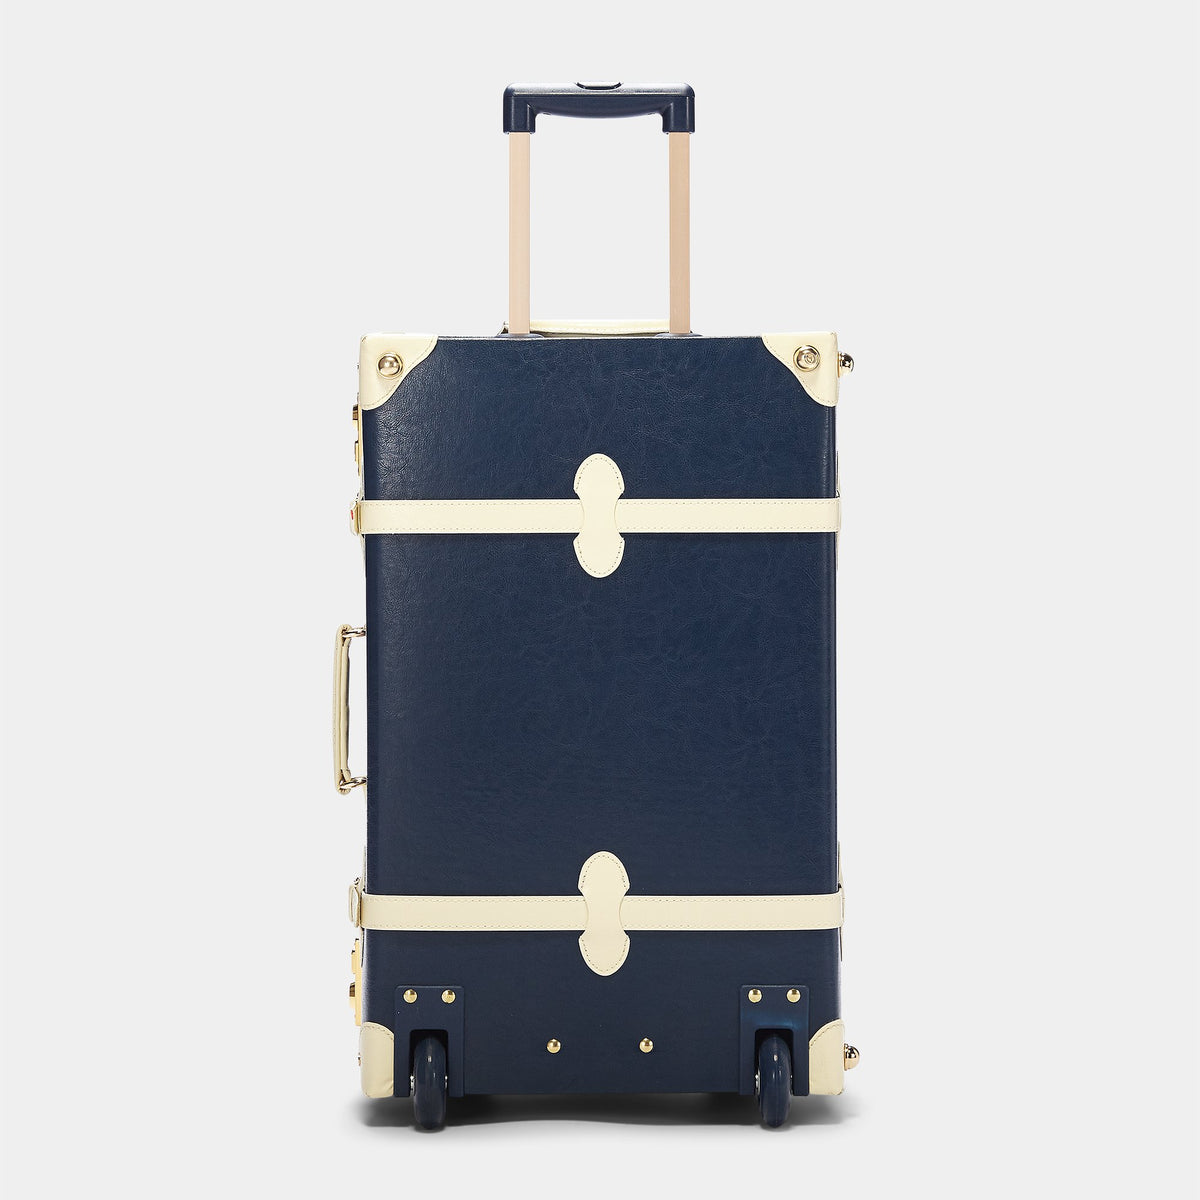 The Entrepreneur Stowaway in Navy - Vintage-Inspired Luggage - Exterior Back with Extendable Handle